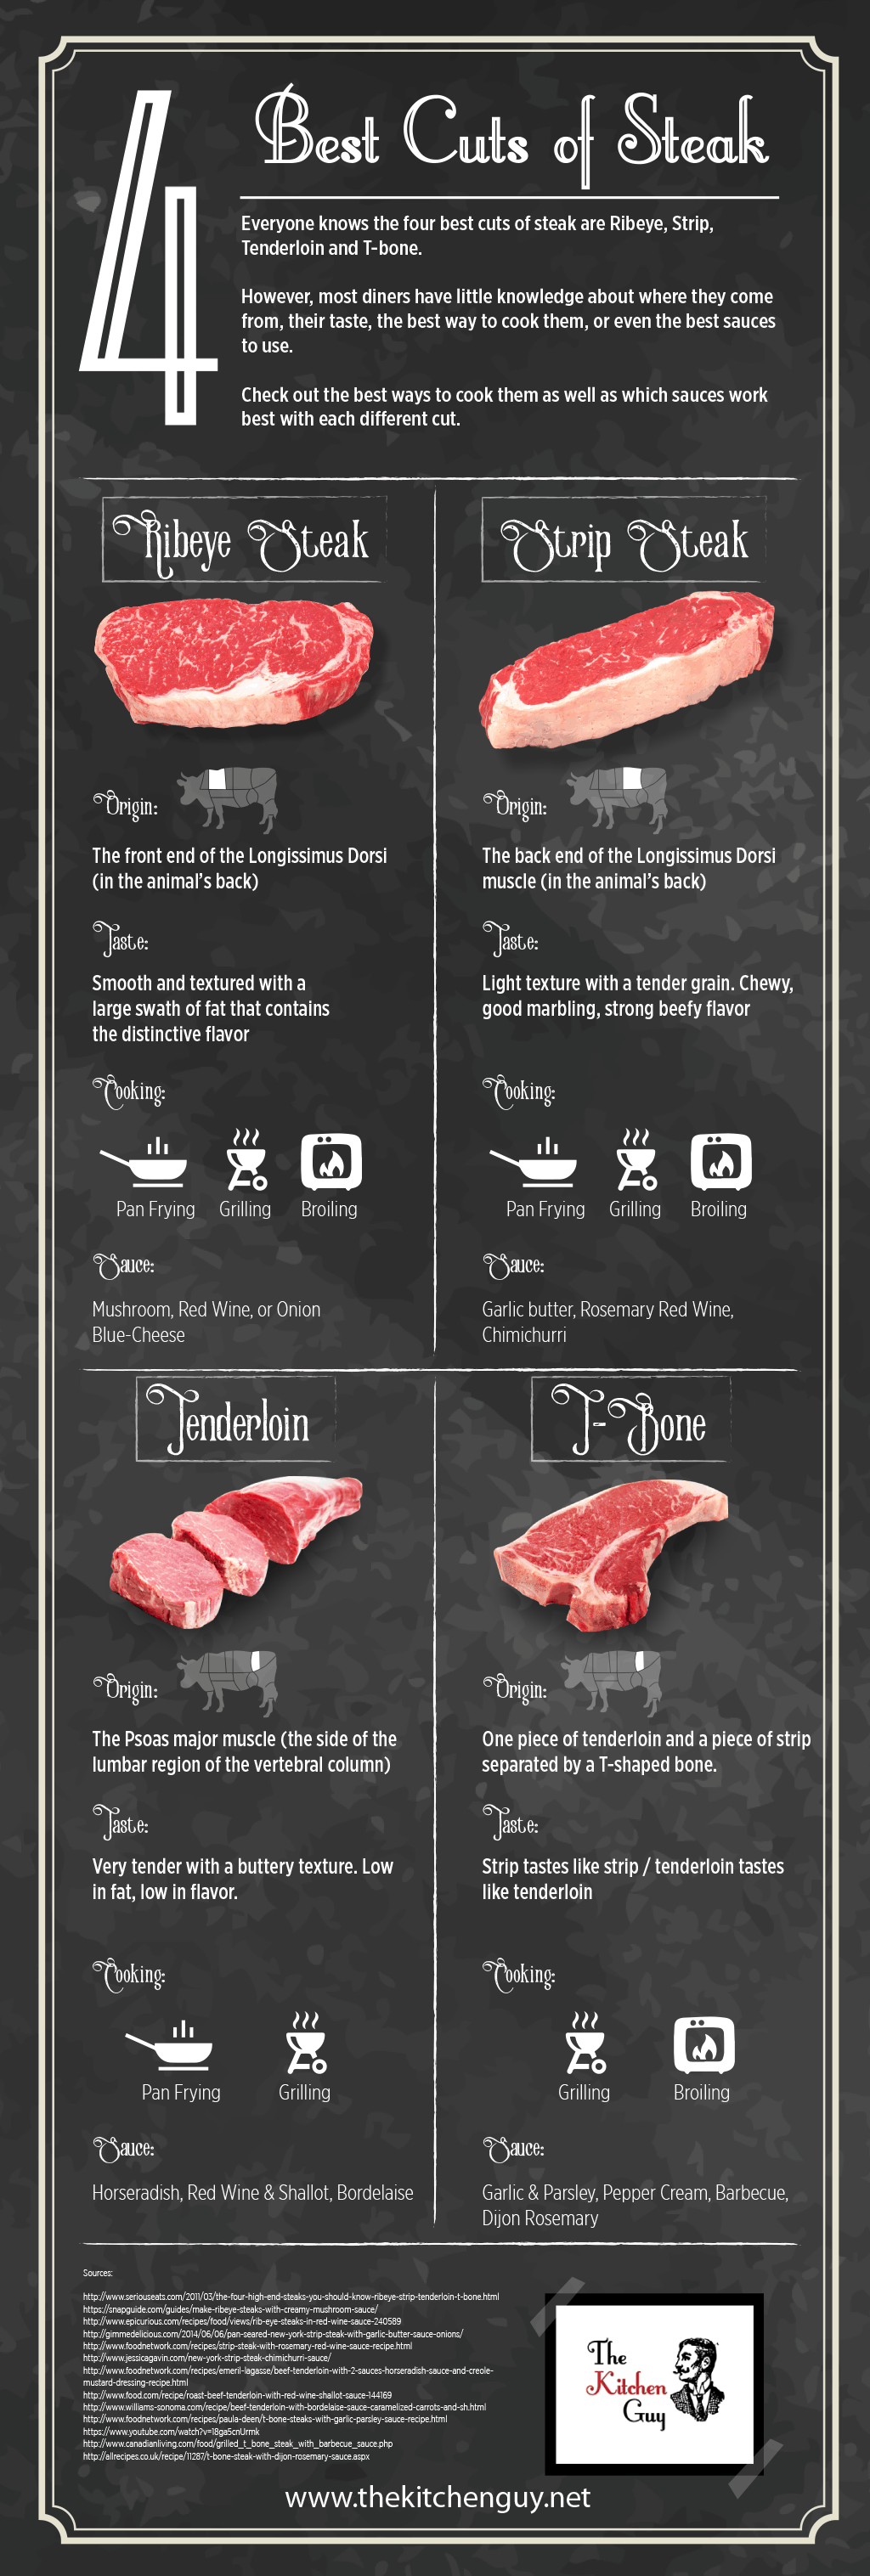 4 Best Cuts of Steak